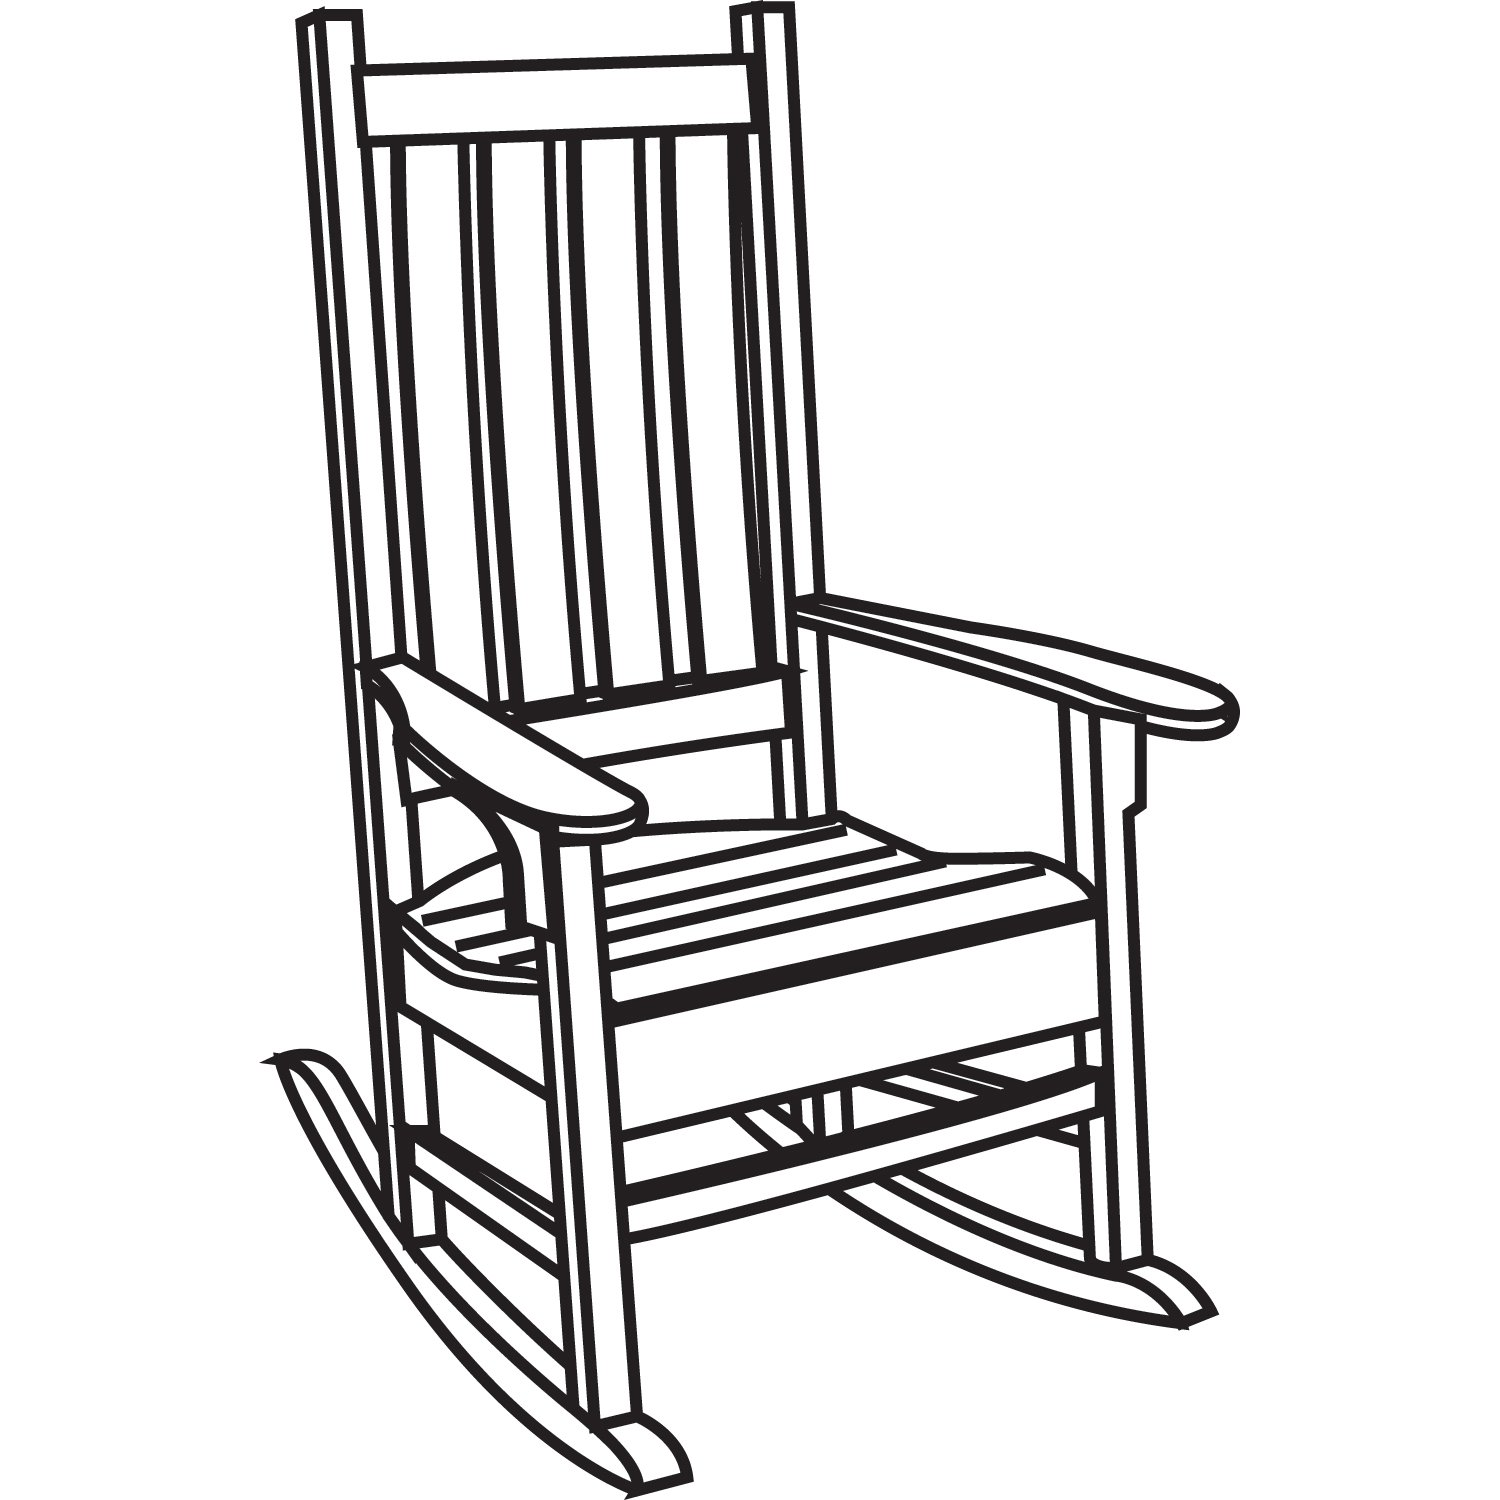 Black and white chair drawing - How To Draw A Rocking Chair Plans Diy Free Download Cedar Trellis